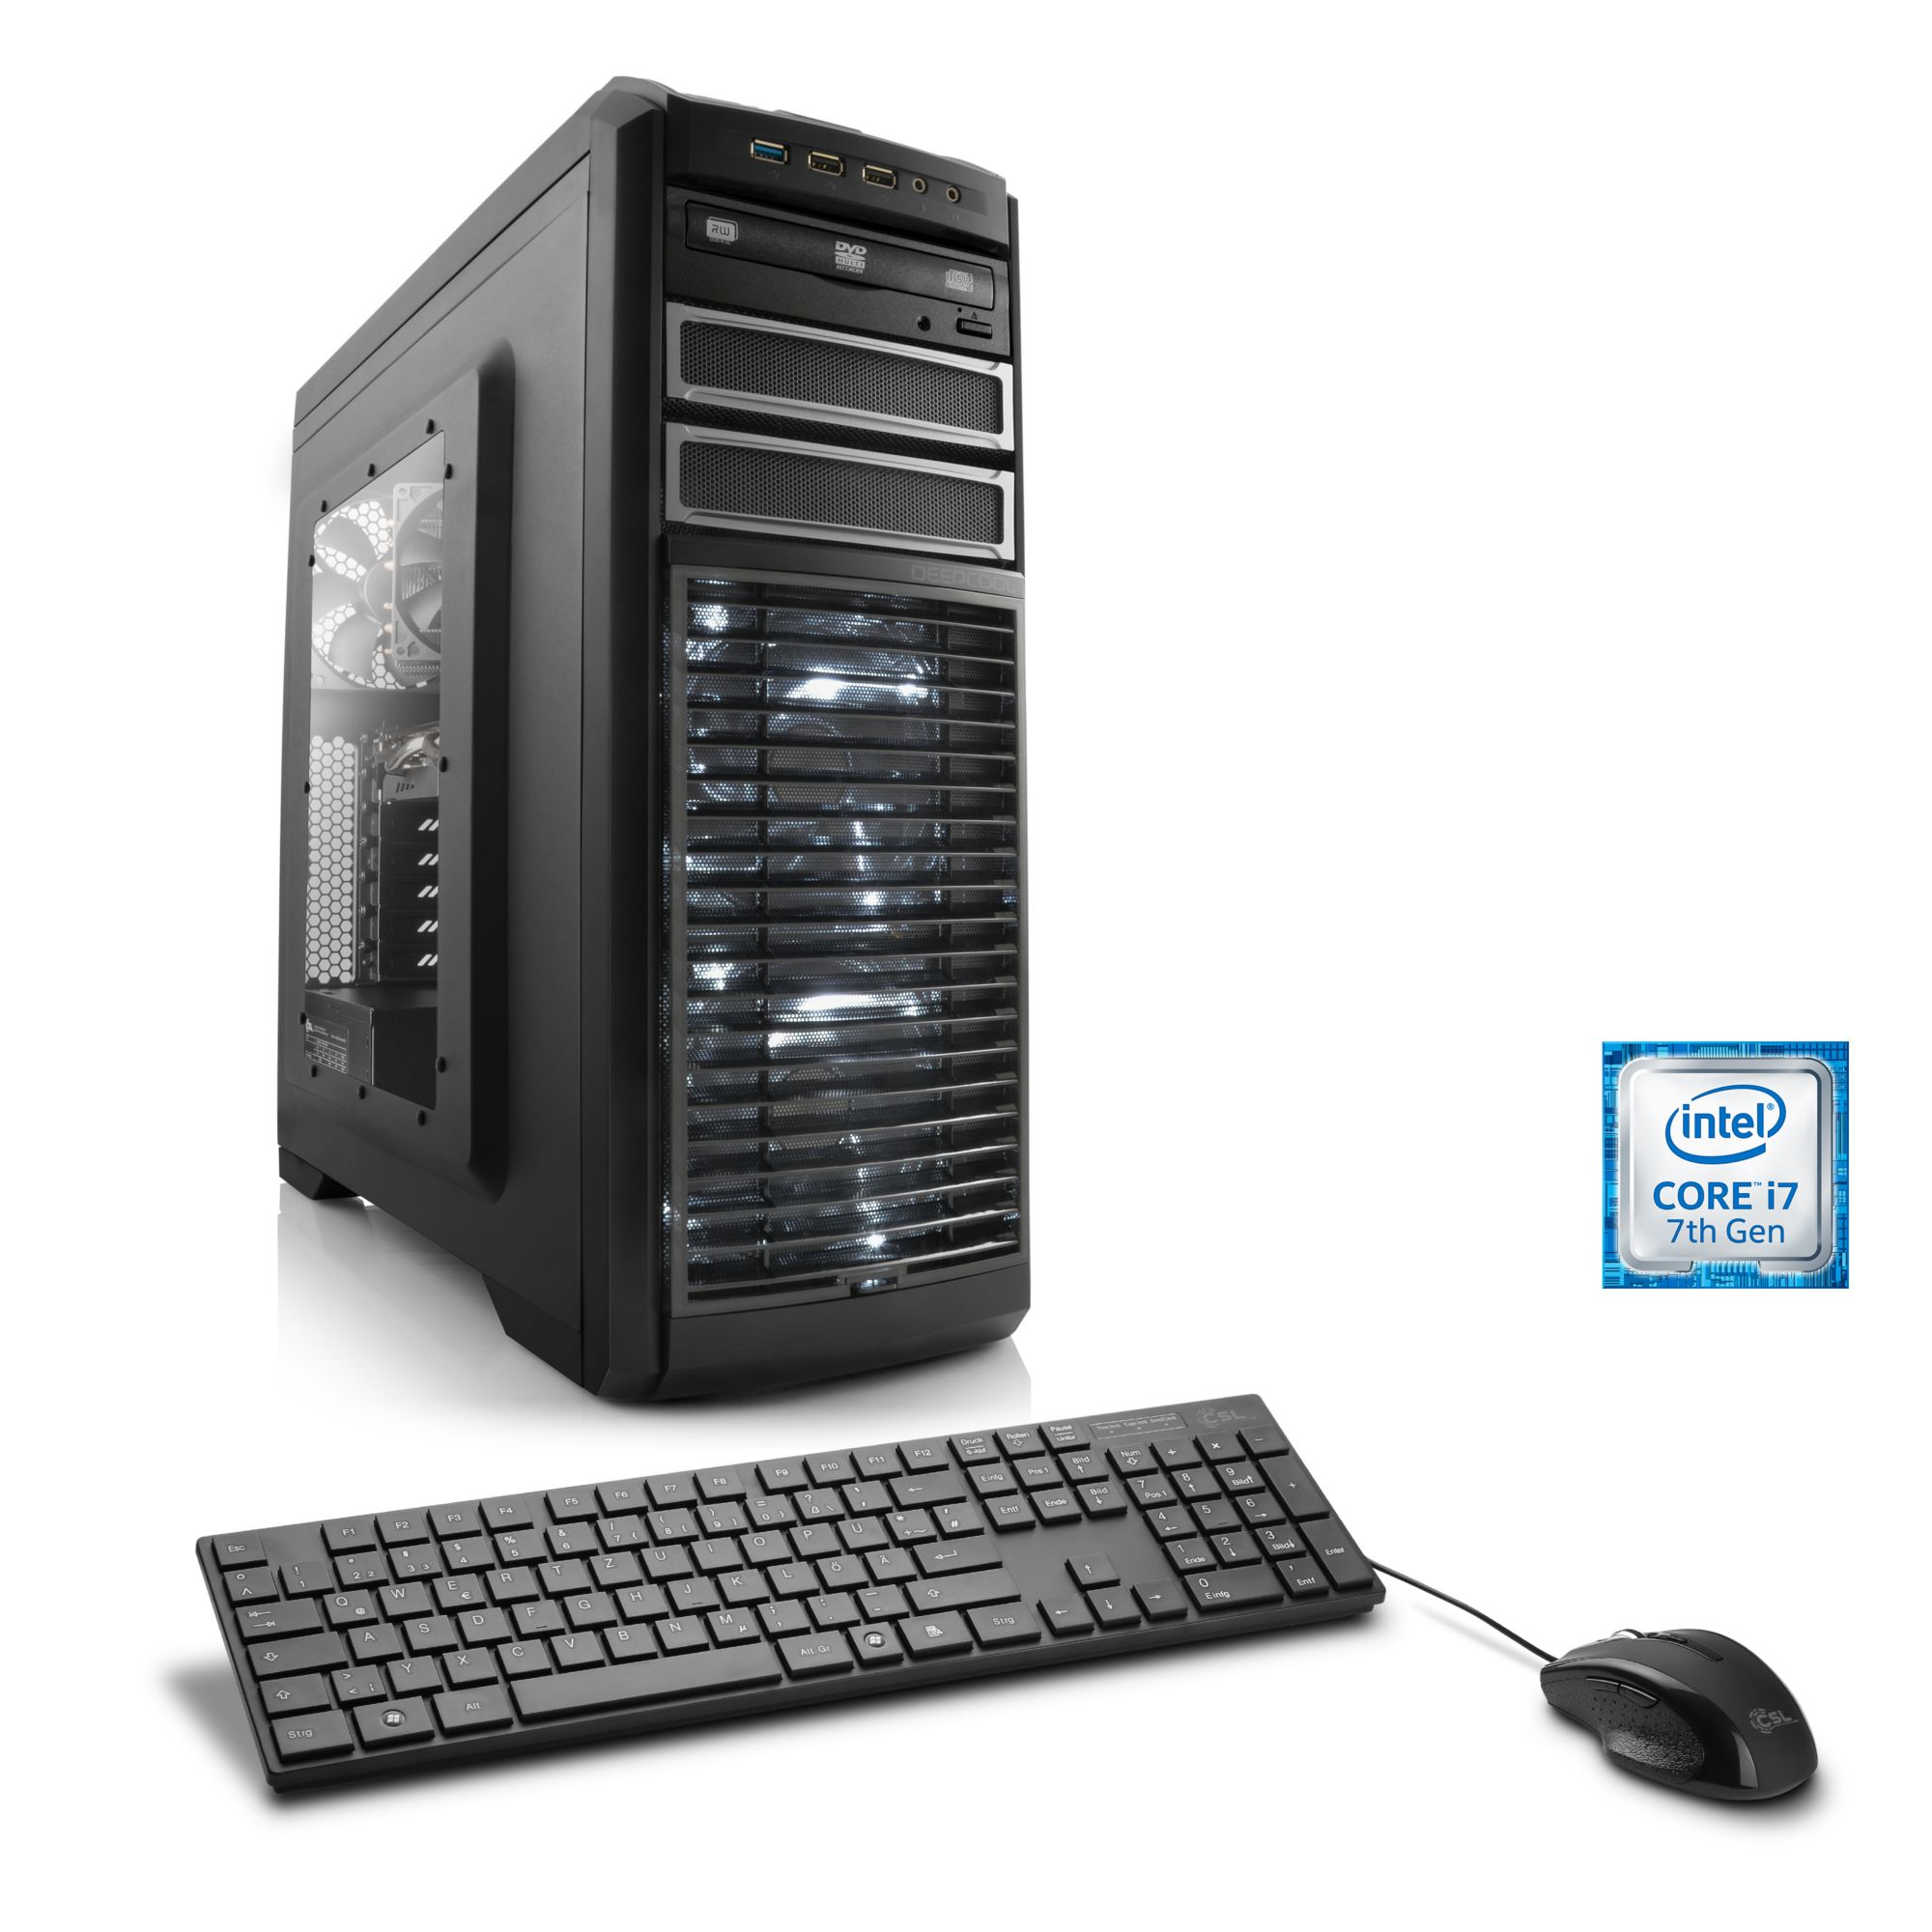 CSL  Extreme Gaming PC | i7-7700K | GTX 1080 | 32GB DDR4 | SSD »Victoriatus T7383 Powered by MSI«